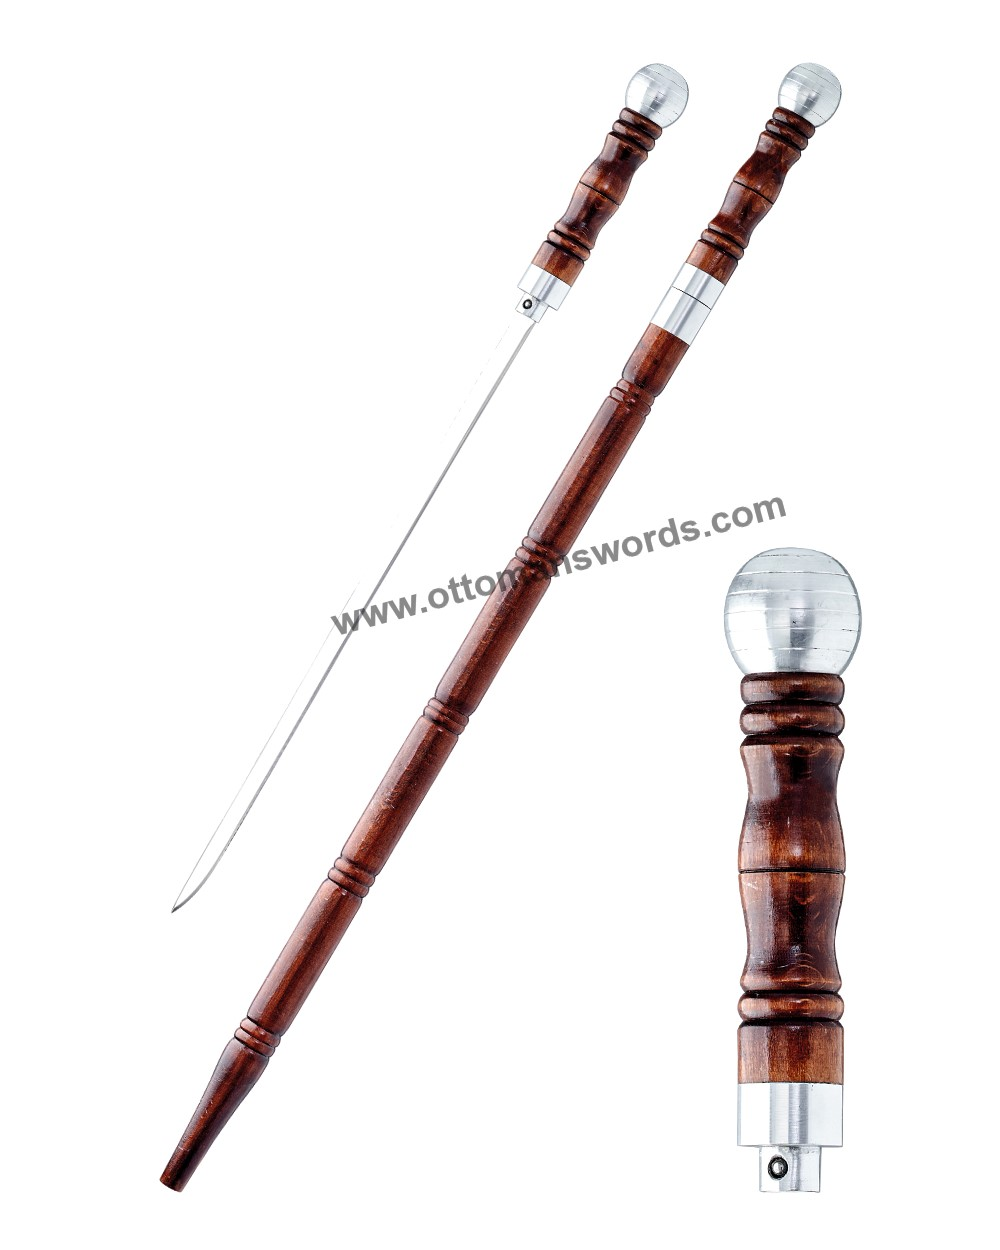 Sword Cane - Sword Cane Walking Stick